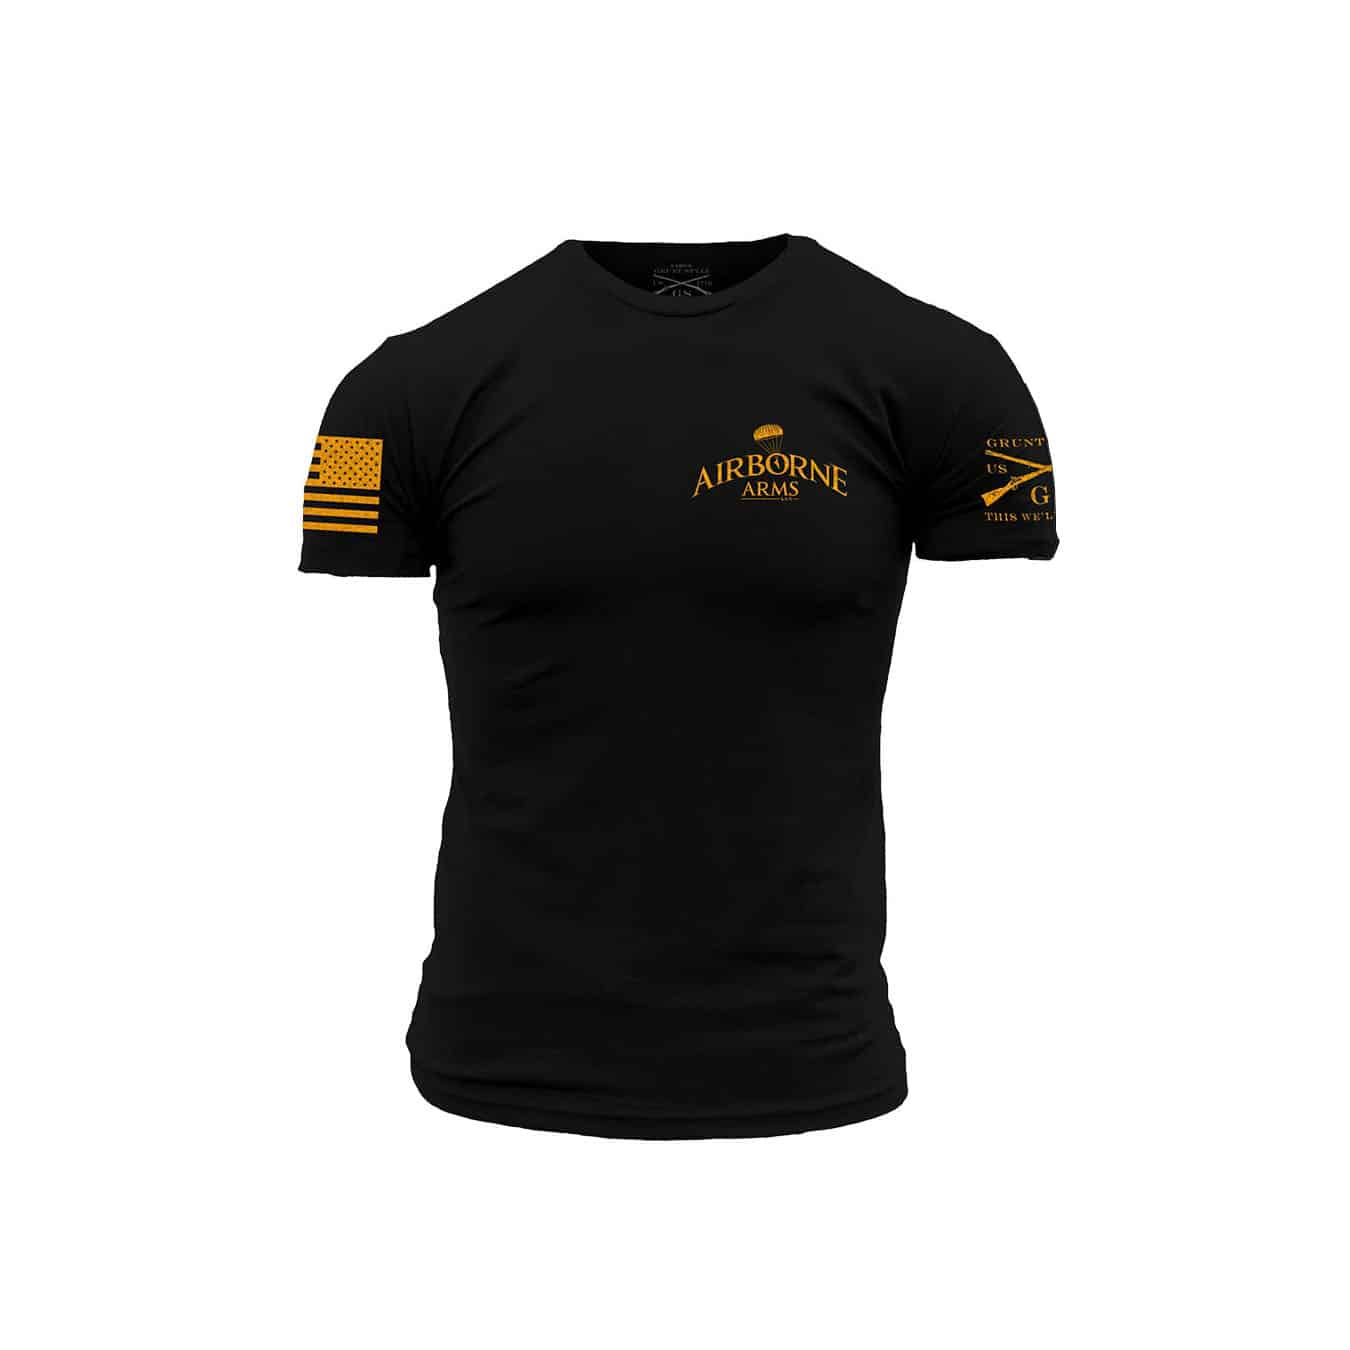 78d68df1 Airborne Arms Grunt Style T-Shirts - Airborne Arms LLC